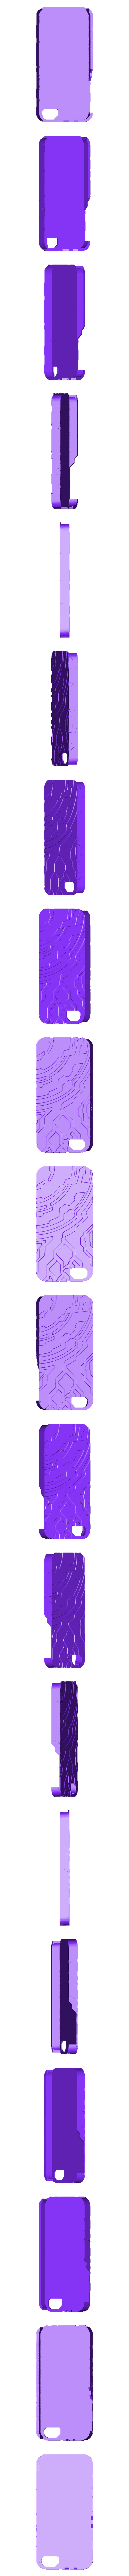 Halo_Case_Full.STL Download free STL file Halo themed Iphone 5 Case • 3D printer template, aevafortinhi